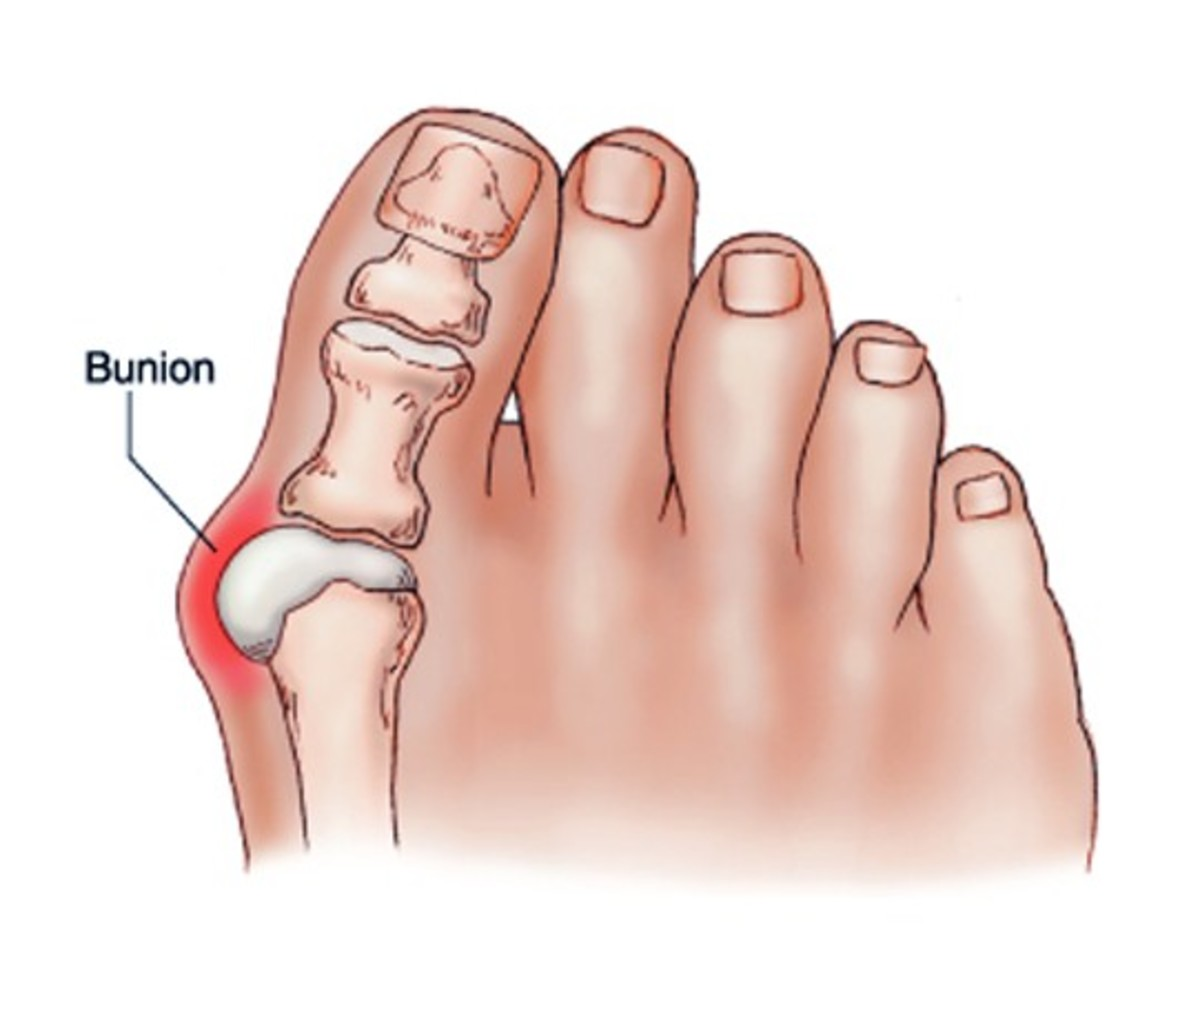 Bunion surgery - Photos, Cost, Complications, Recovery time